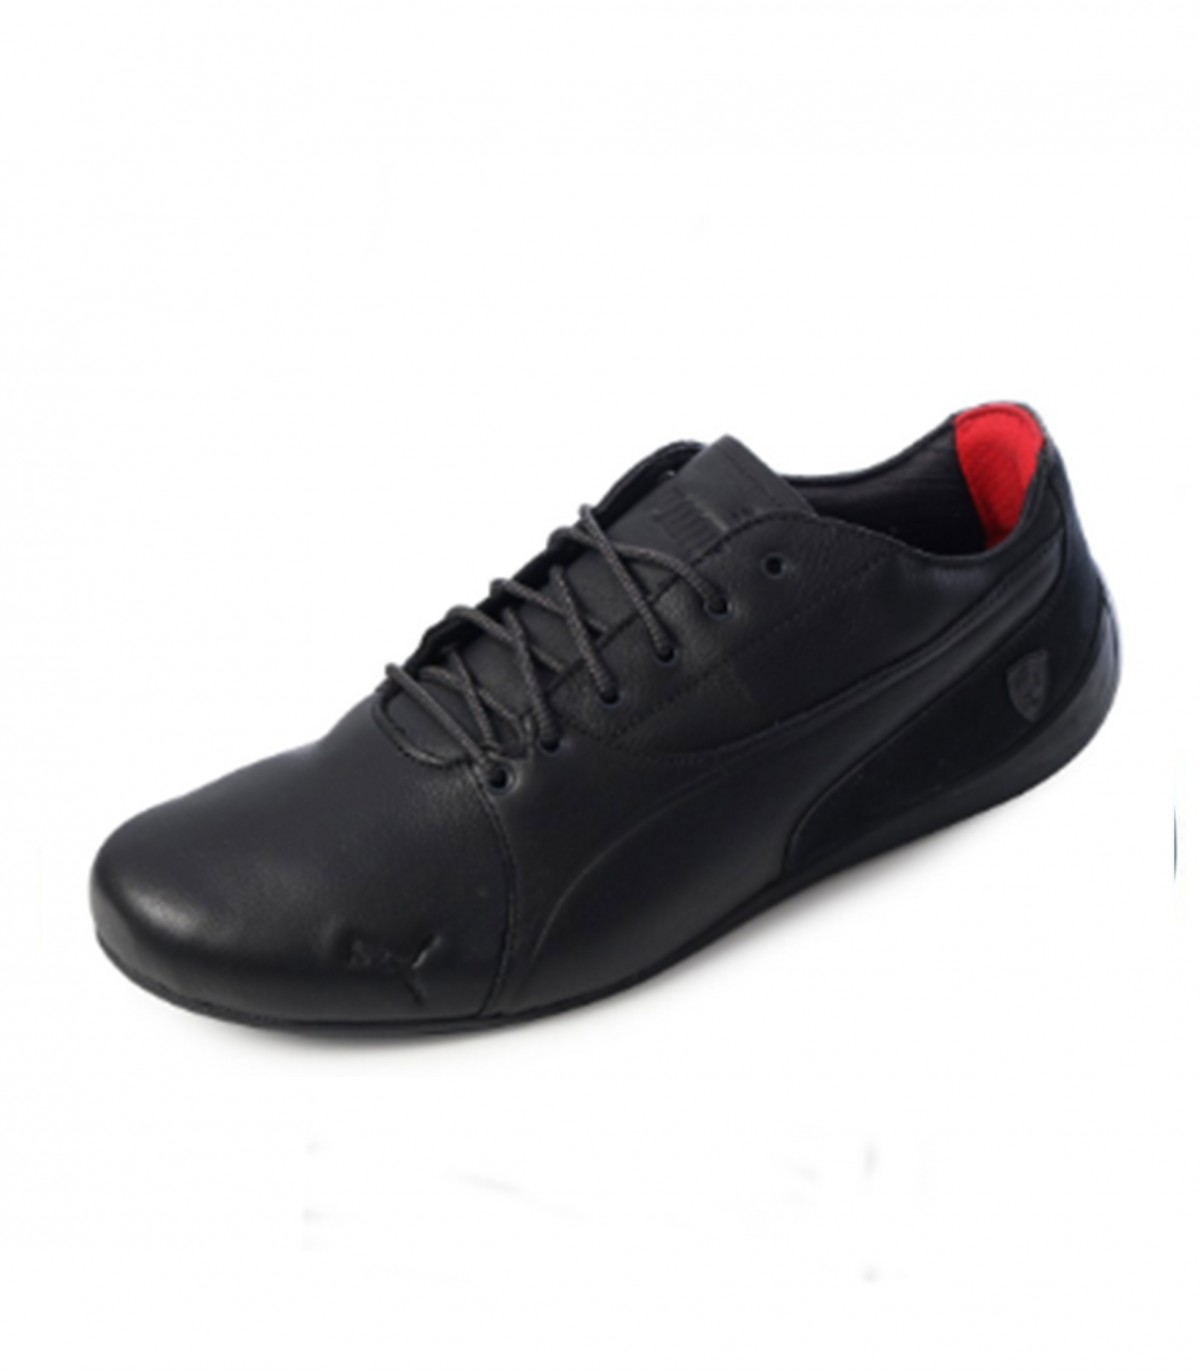 137d1296d6 Buy Puma Sf Drift Cat 7 Black